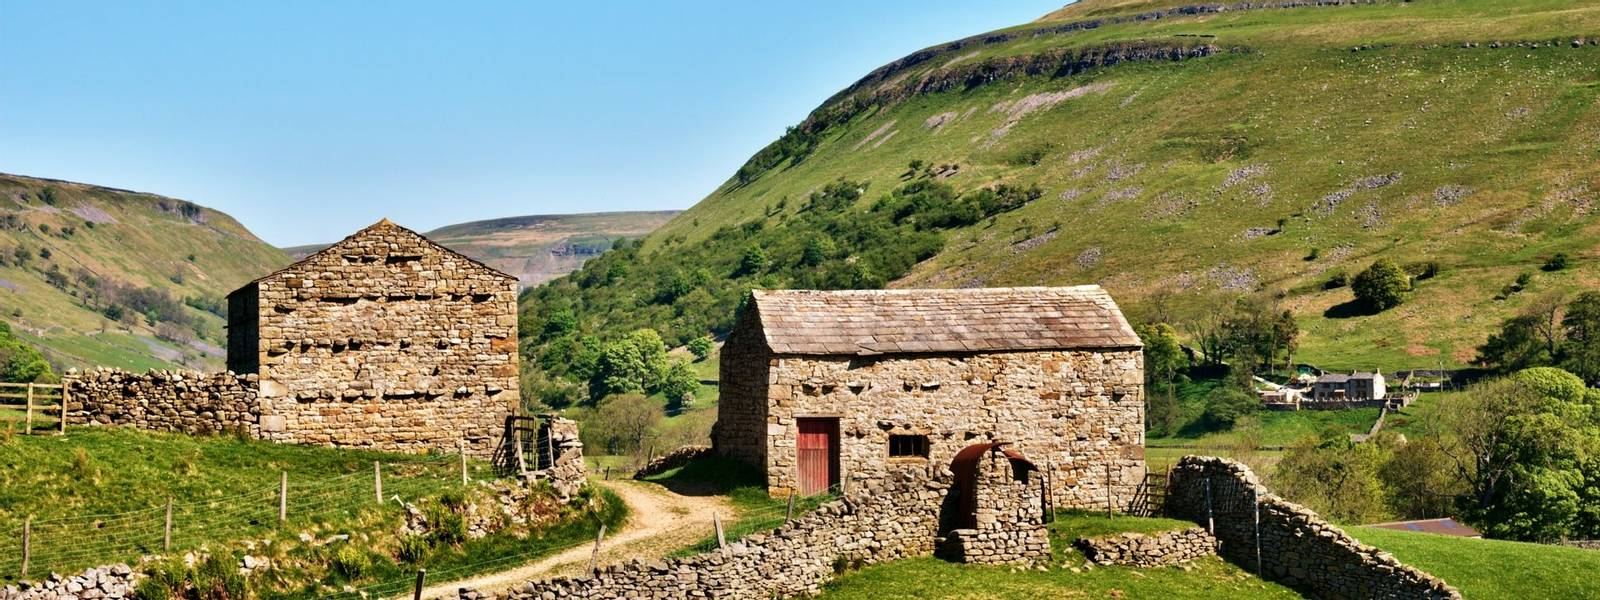 Quaint old stone barns surrounded by dry stone walls enclosing green fields on the gently rolling hills in Swaledale in the …